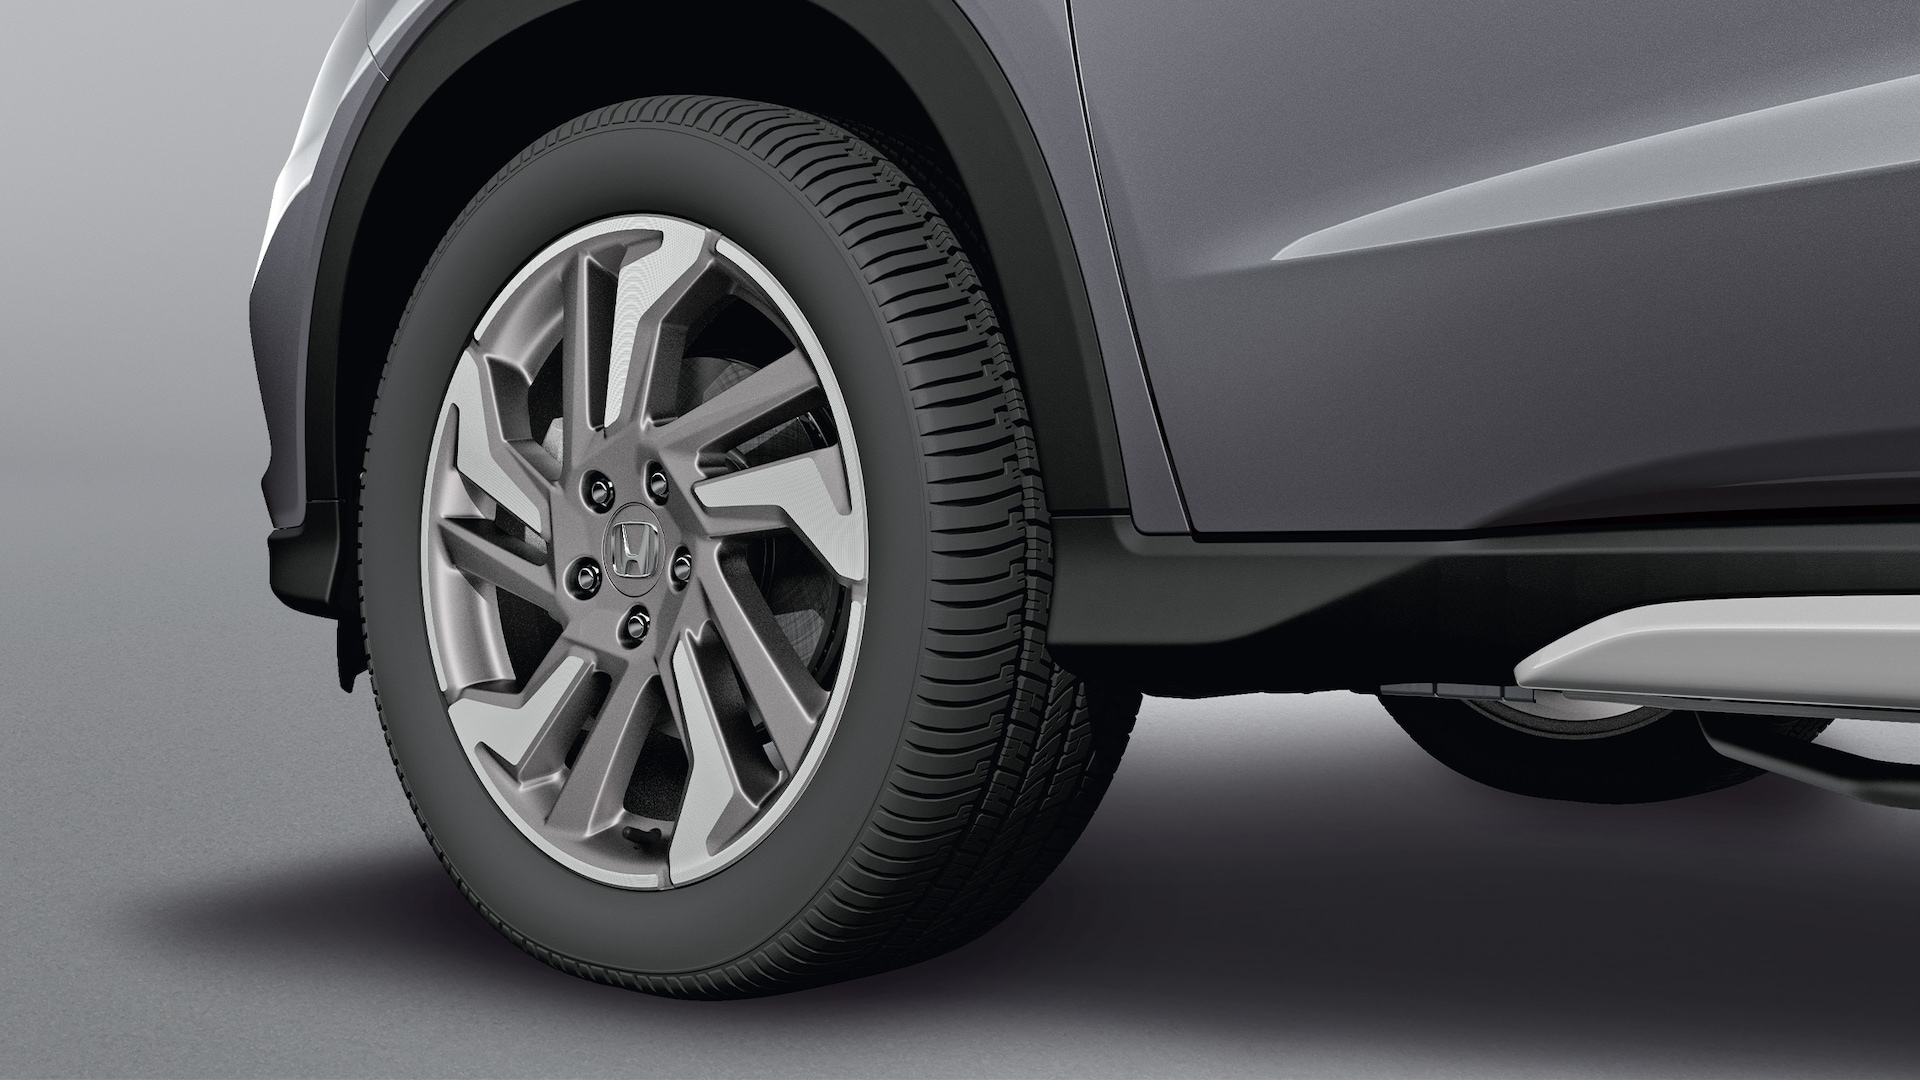 Accessory 18-inch alloy wheel detail on the 2021 Honda HR-V EX-L.